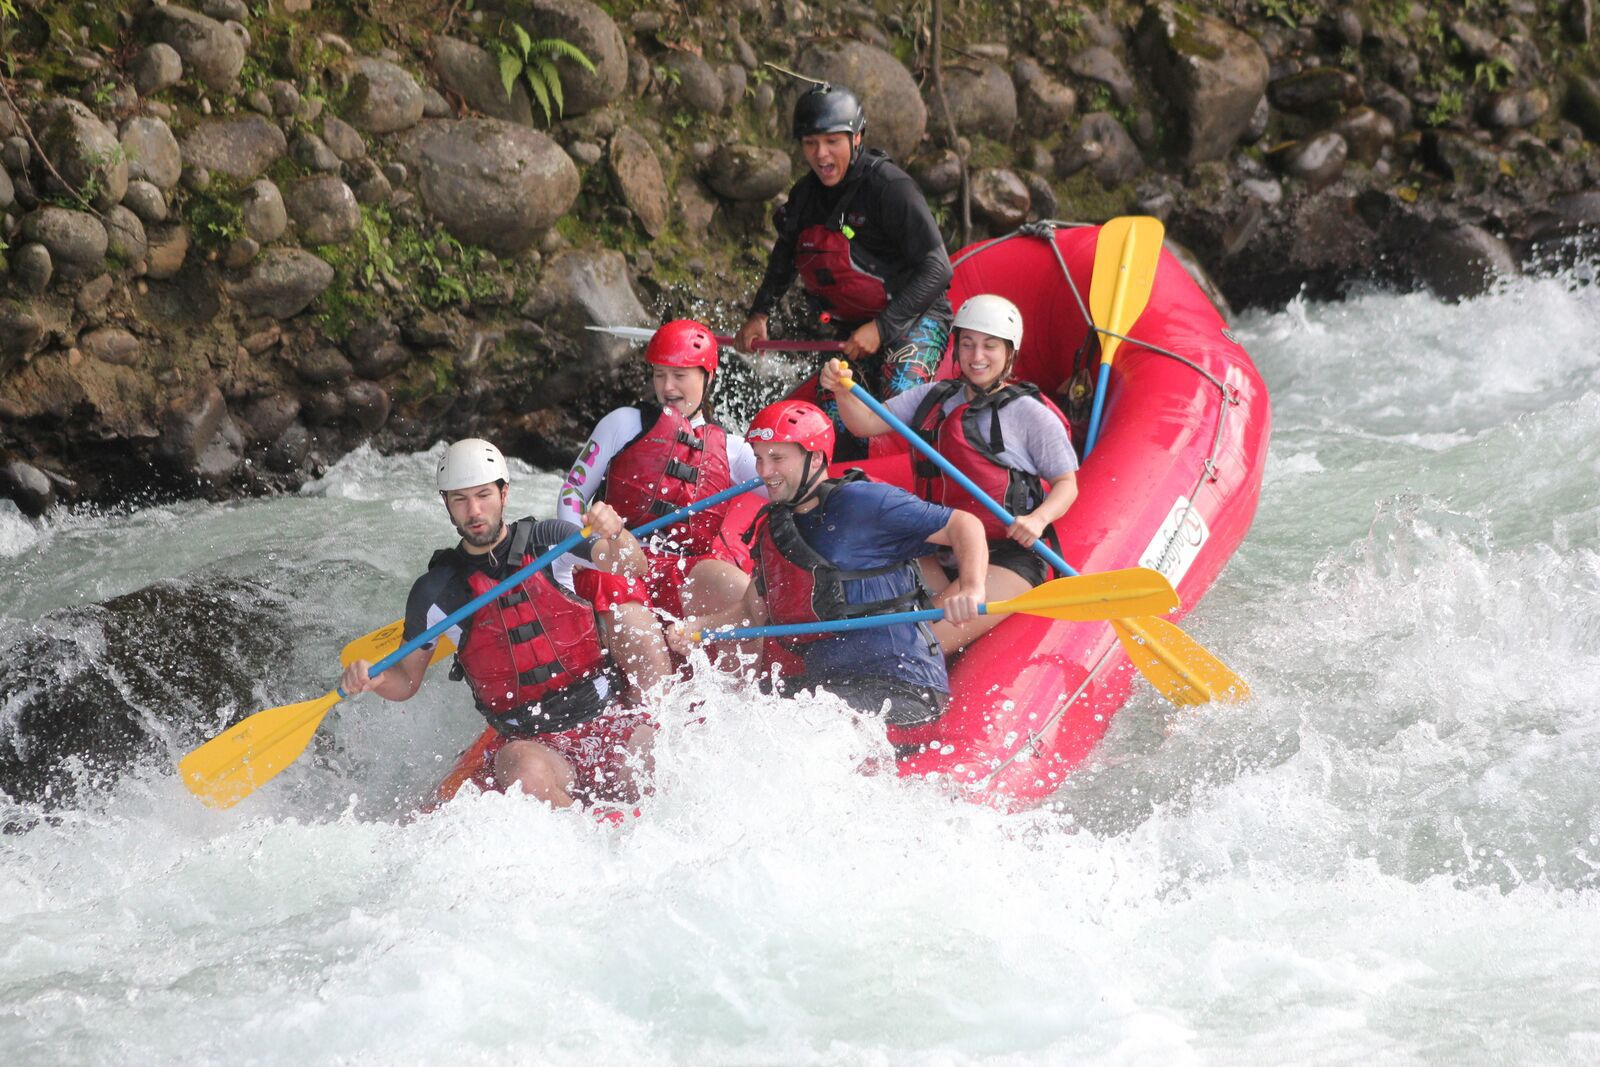 Rafting in Costa Rica. Vacation